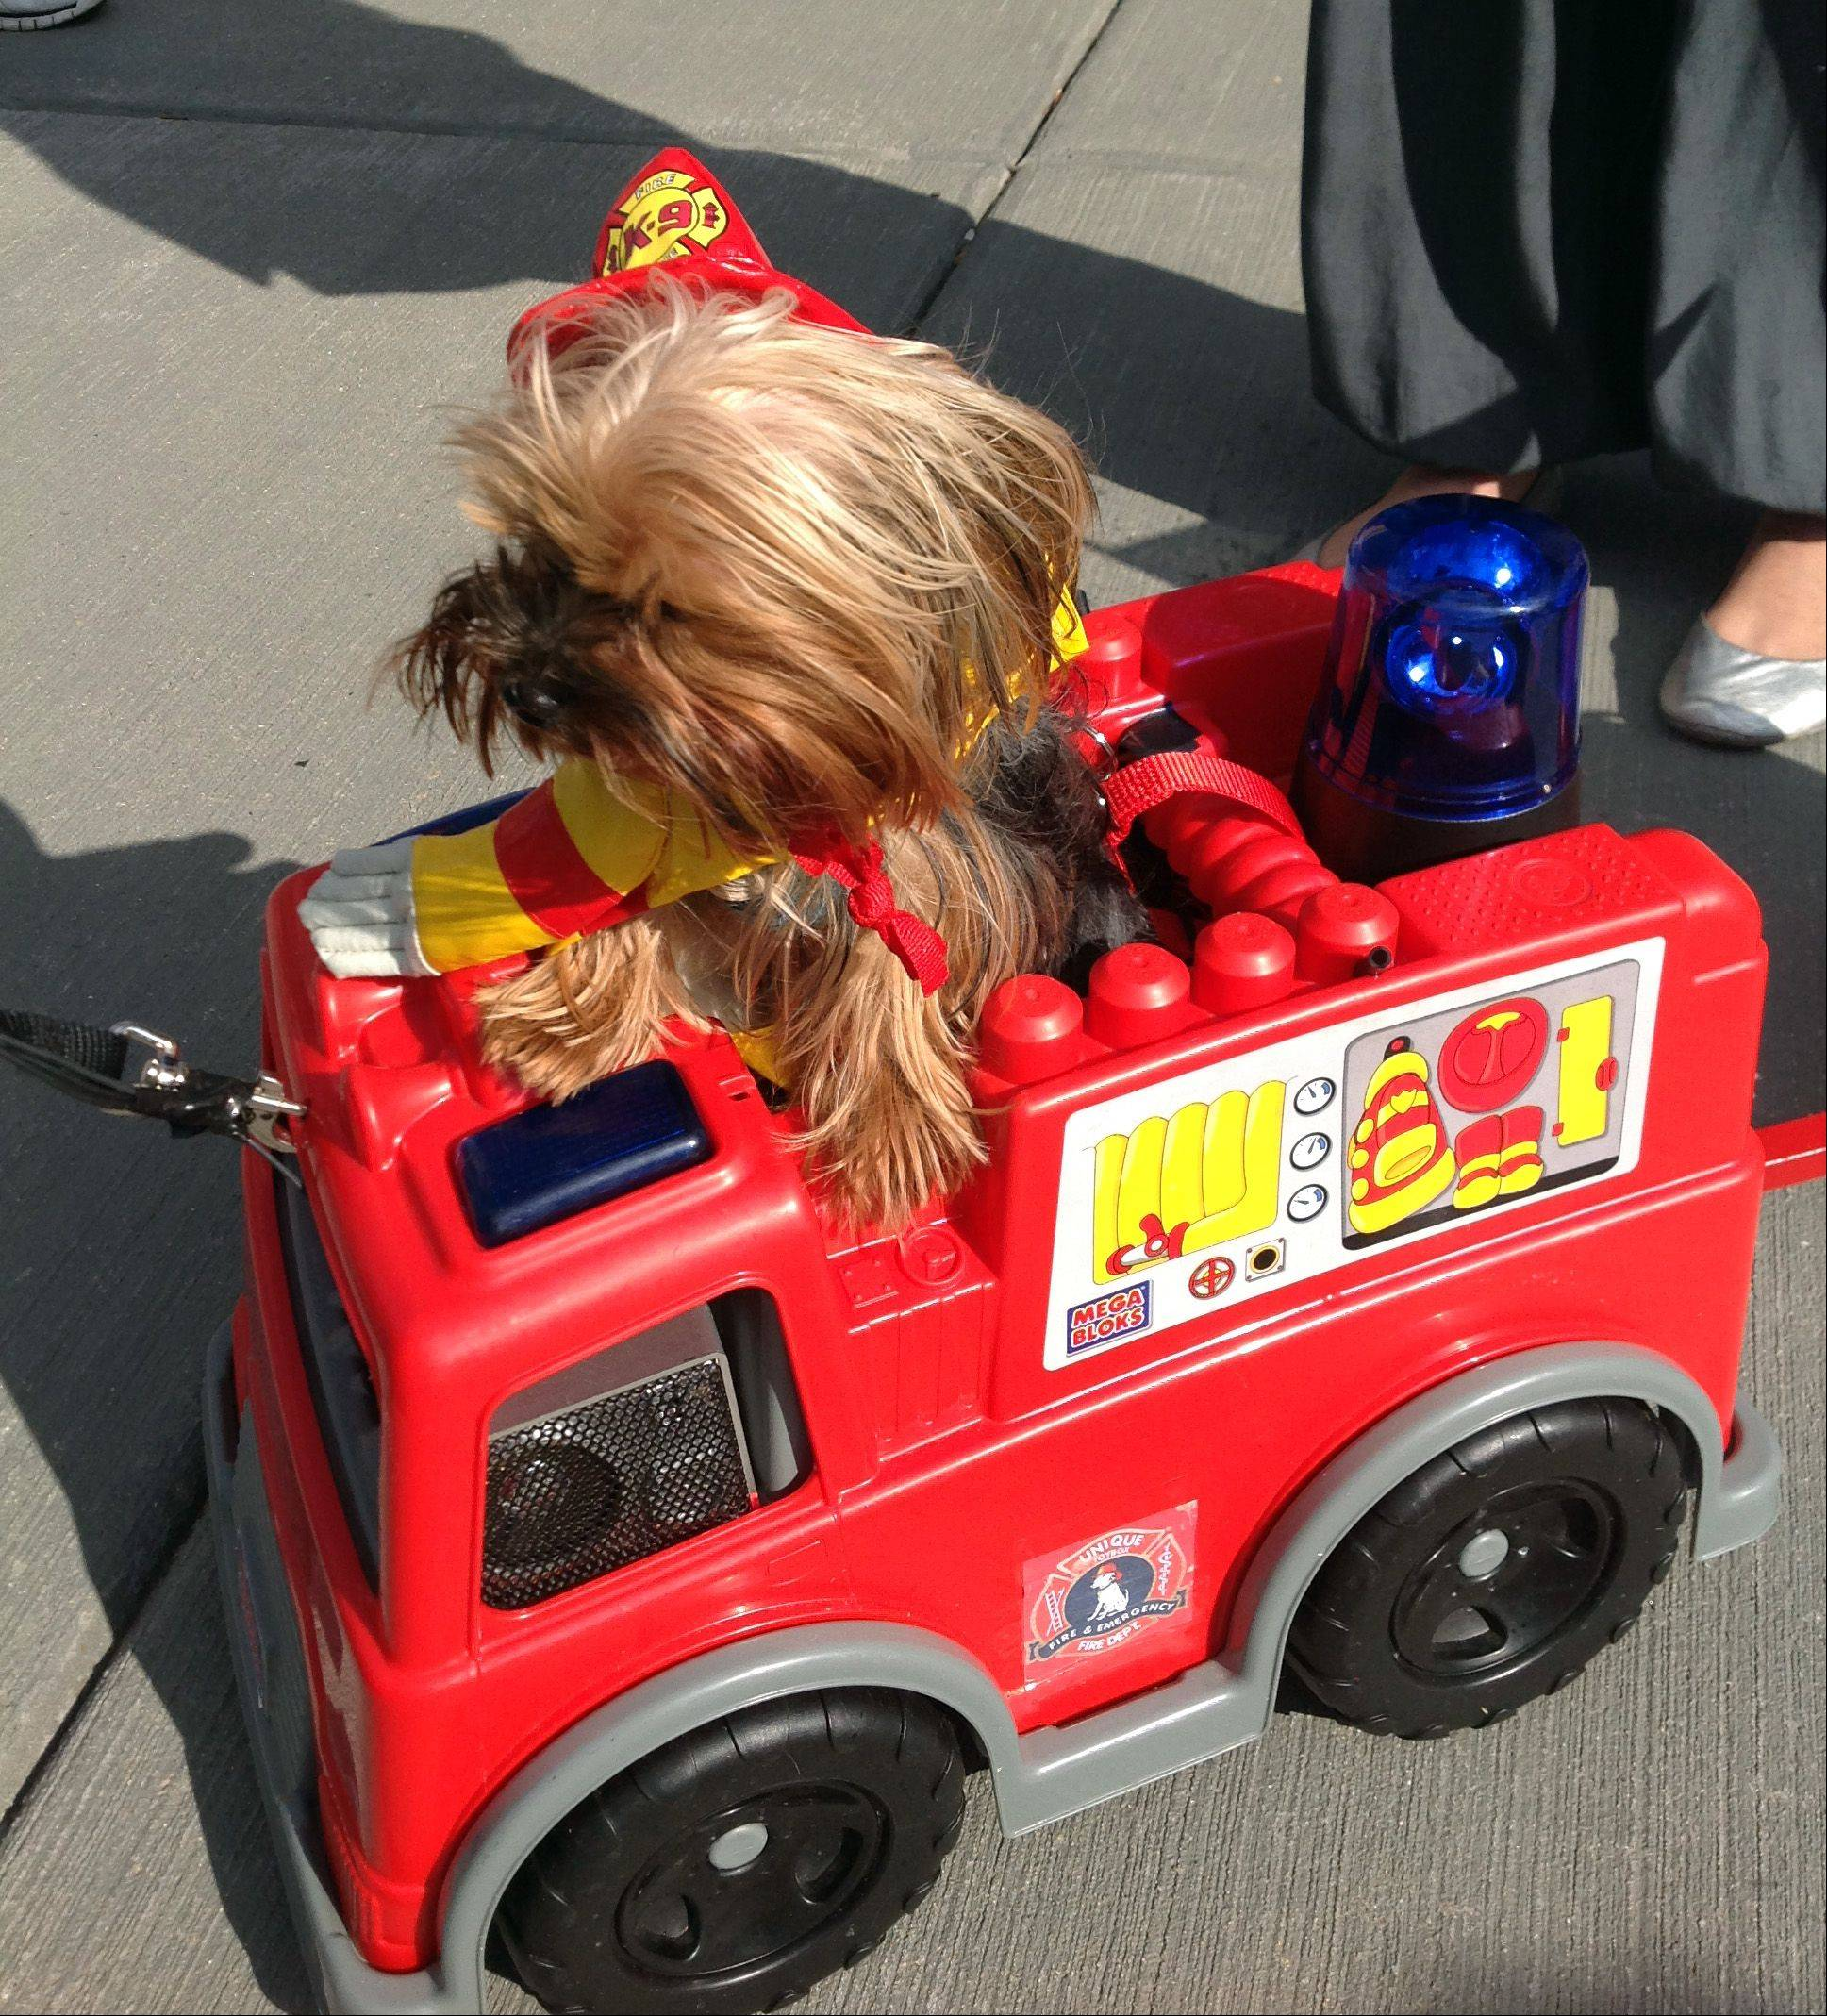 Hairy Pawter, a Yorkshire terrier from Streamwood, won the fan favorite award Saturday during the pet costume contest and parade that kicked off the Hoots and H'owls Halloween event at Randhurst Village. Pawter was dressed as a firefighter and rode in a tiny fire truck that squirted water. He also models, works as a therapy dog and has his own business card.